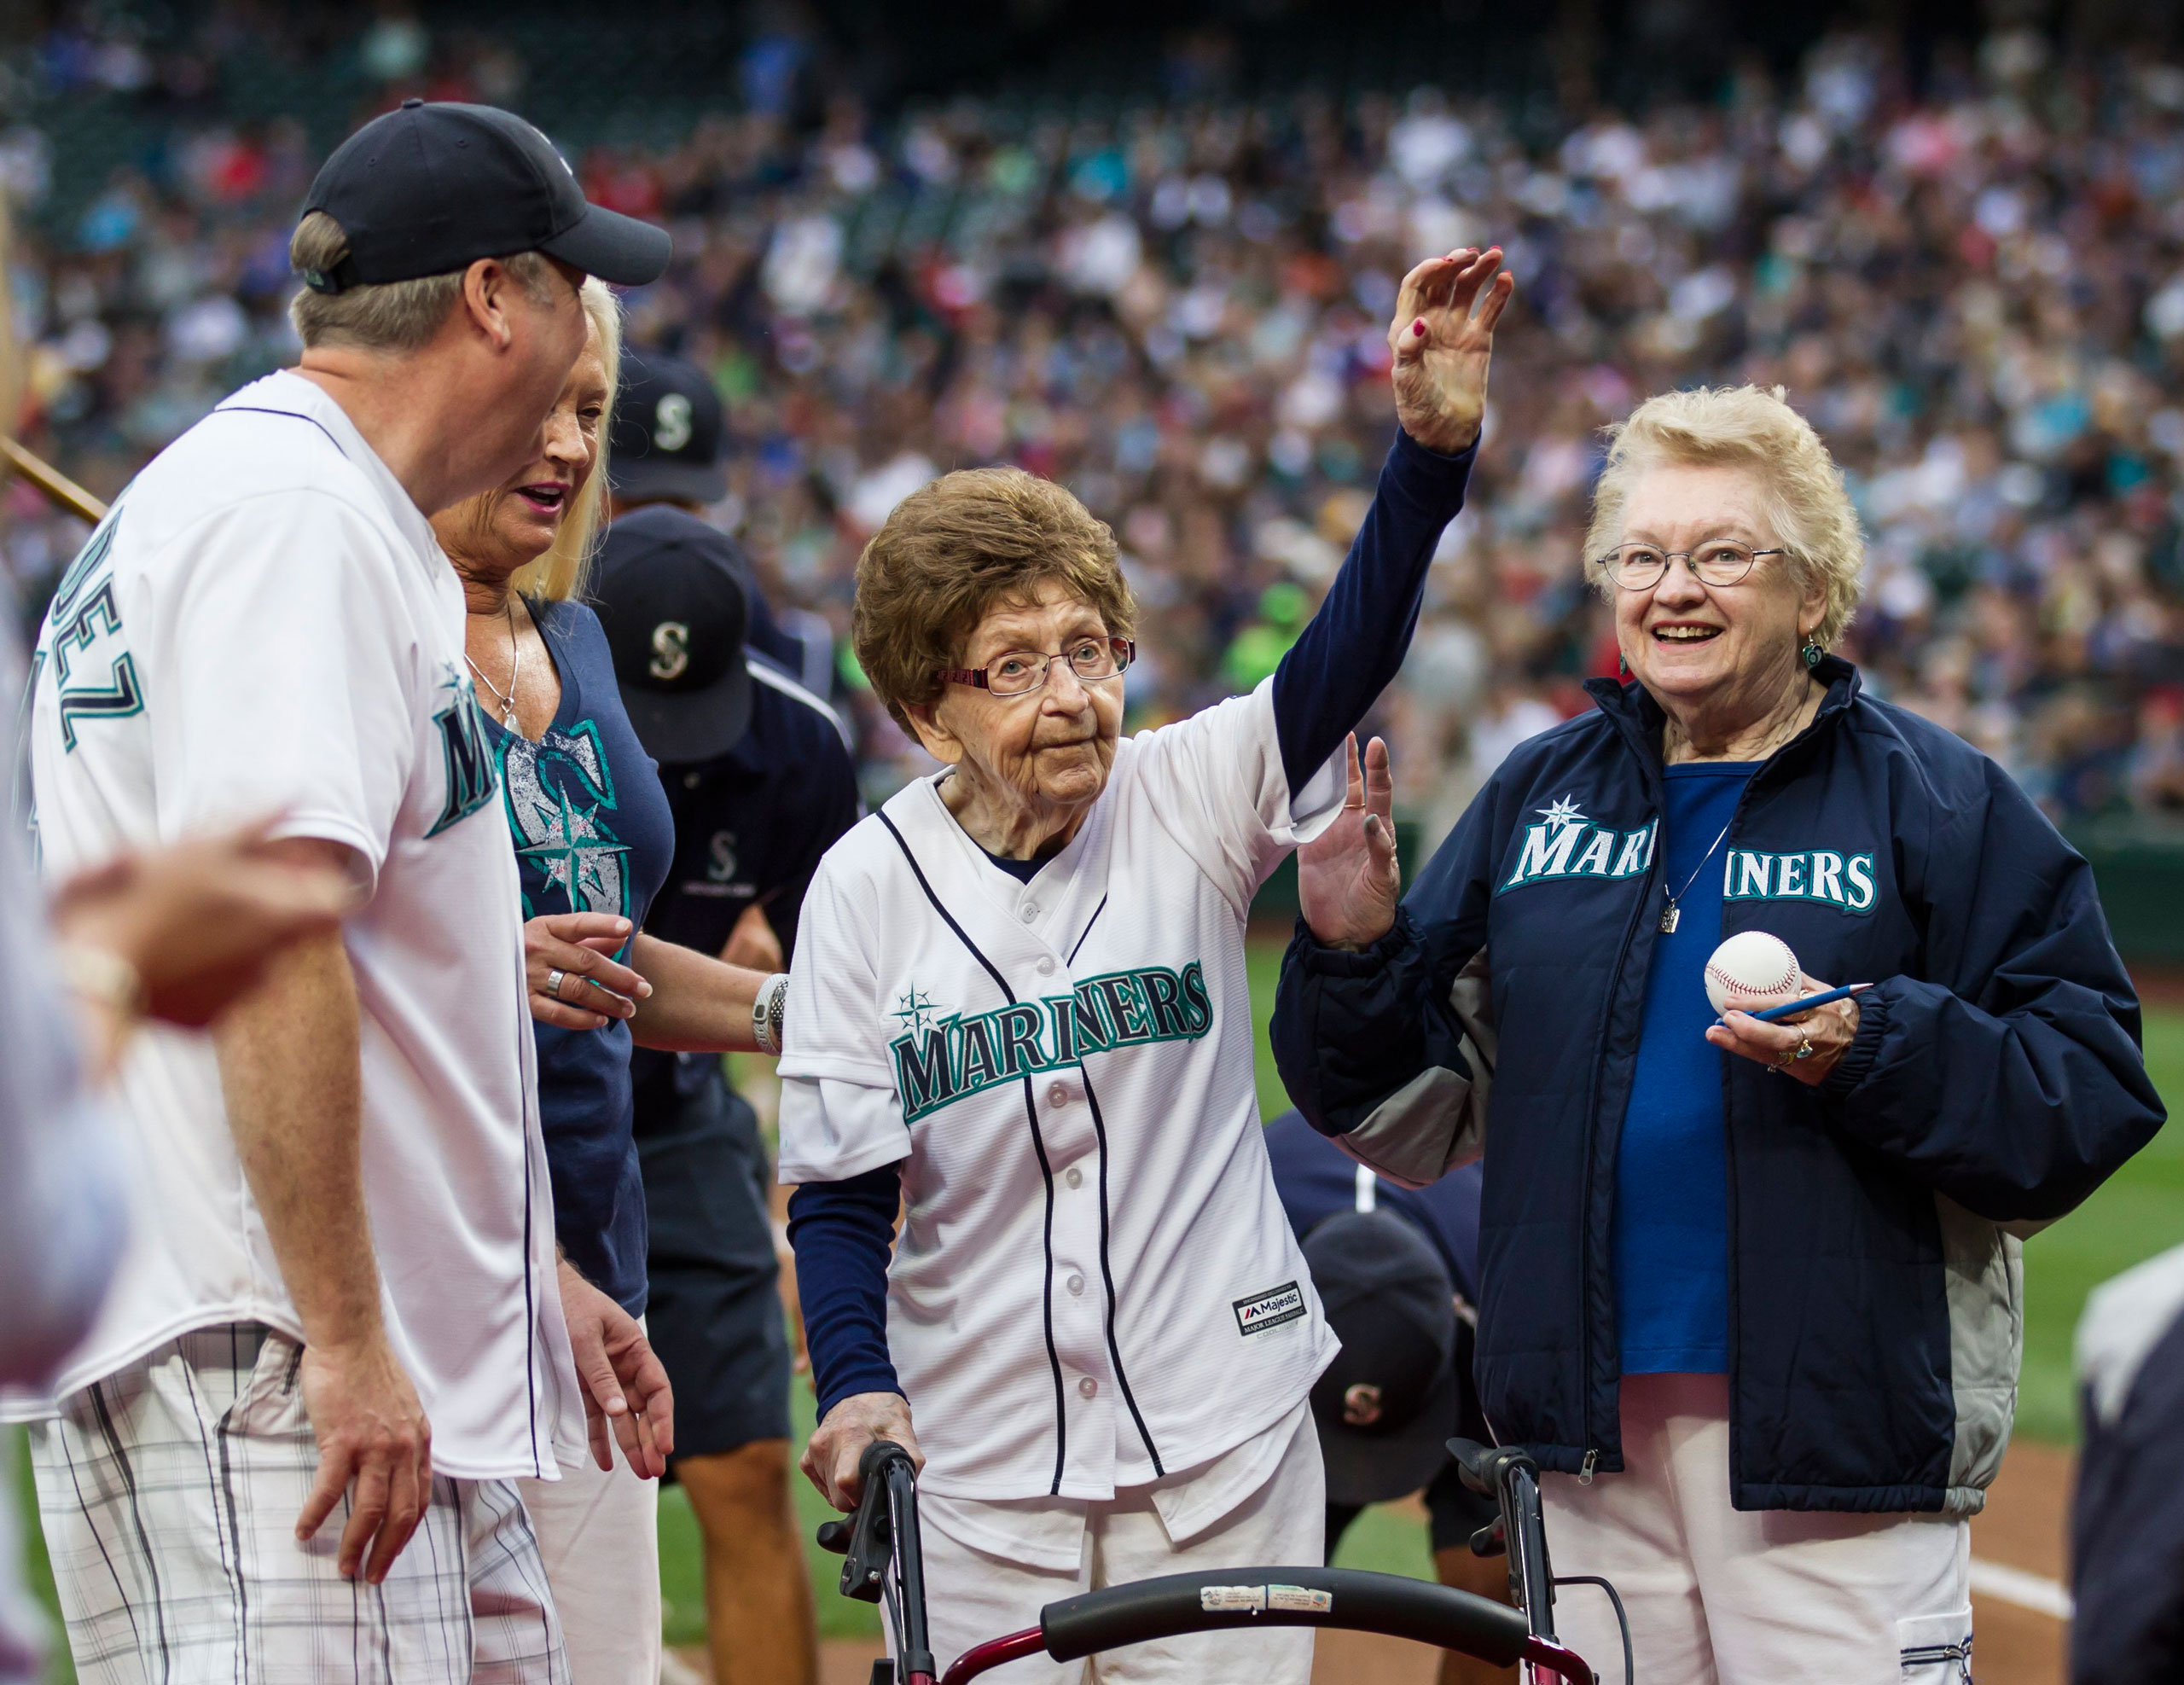 108-year-old Evelyn Jones of Woodinville, Wash., waves to the crowd after throwing out the ceremonial first pitch on her birthday before a baseball game between the Seattle Mariners and the Los Angeles Angels, in Seattle, on July 11, 2015.